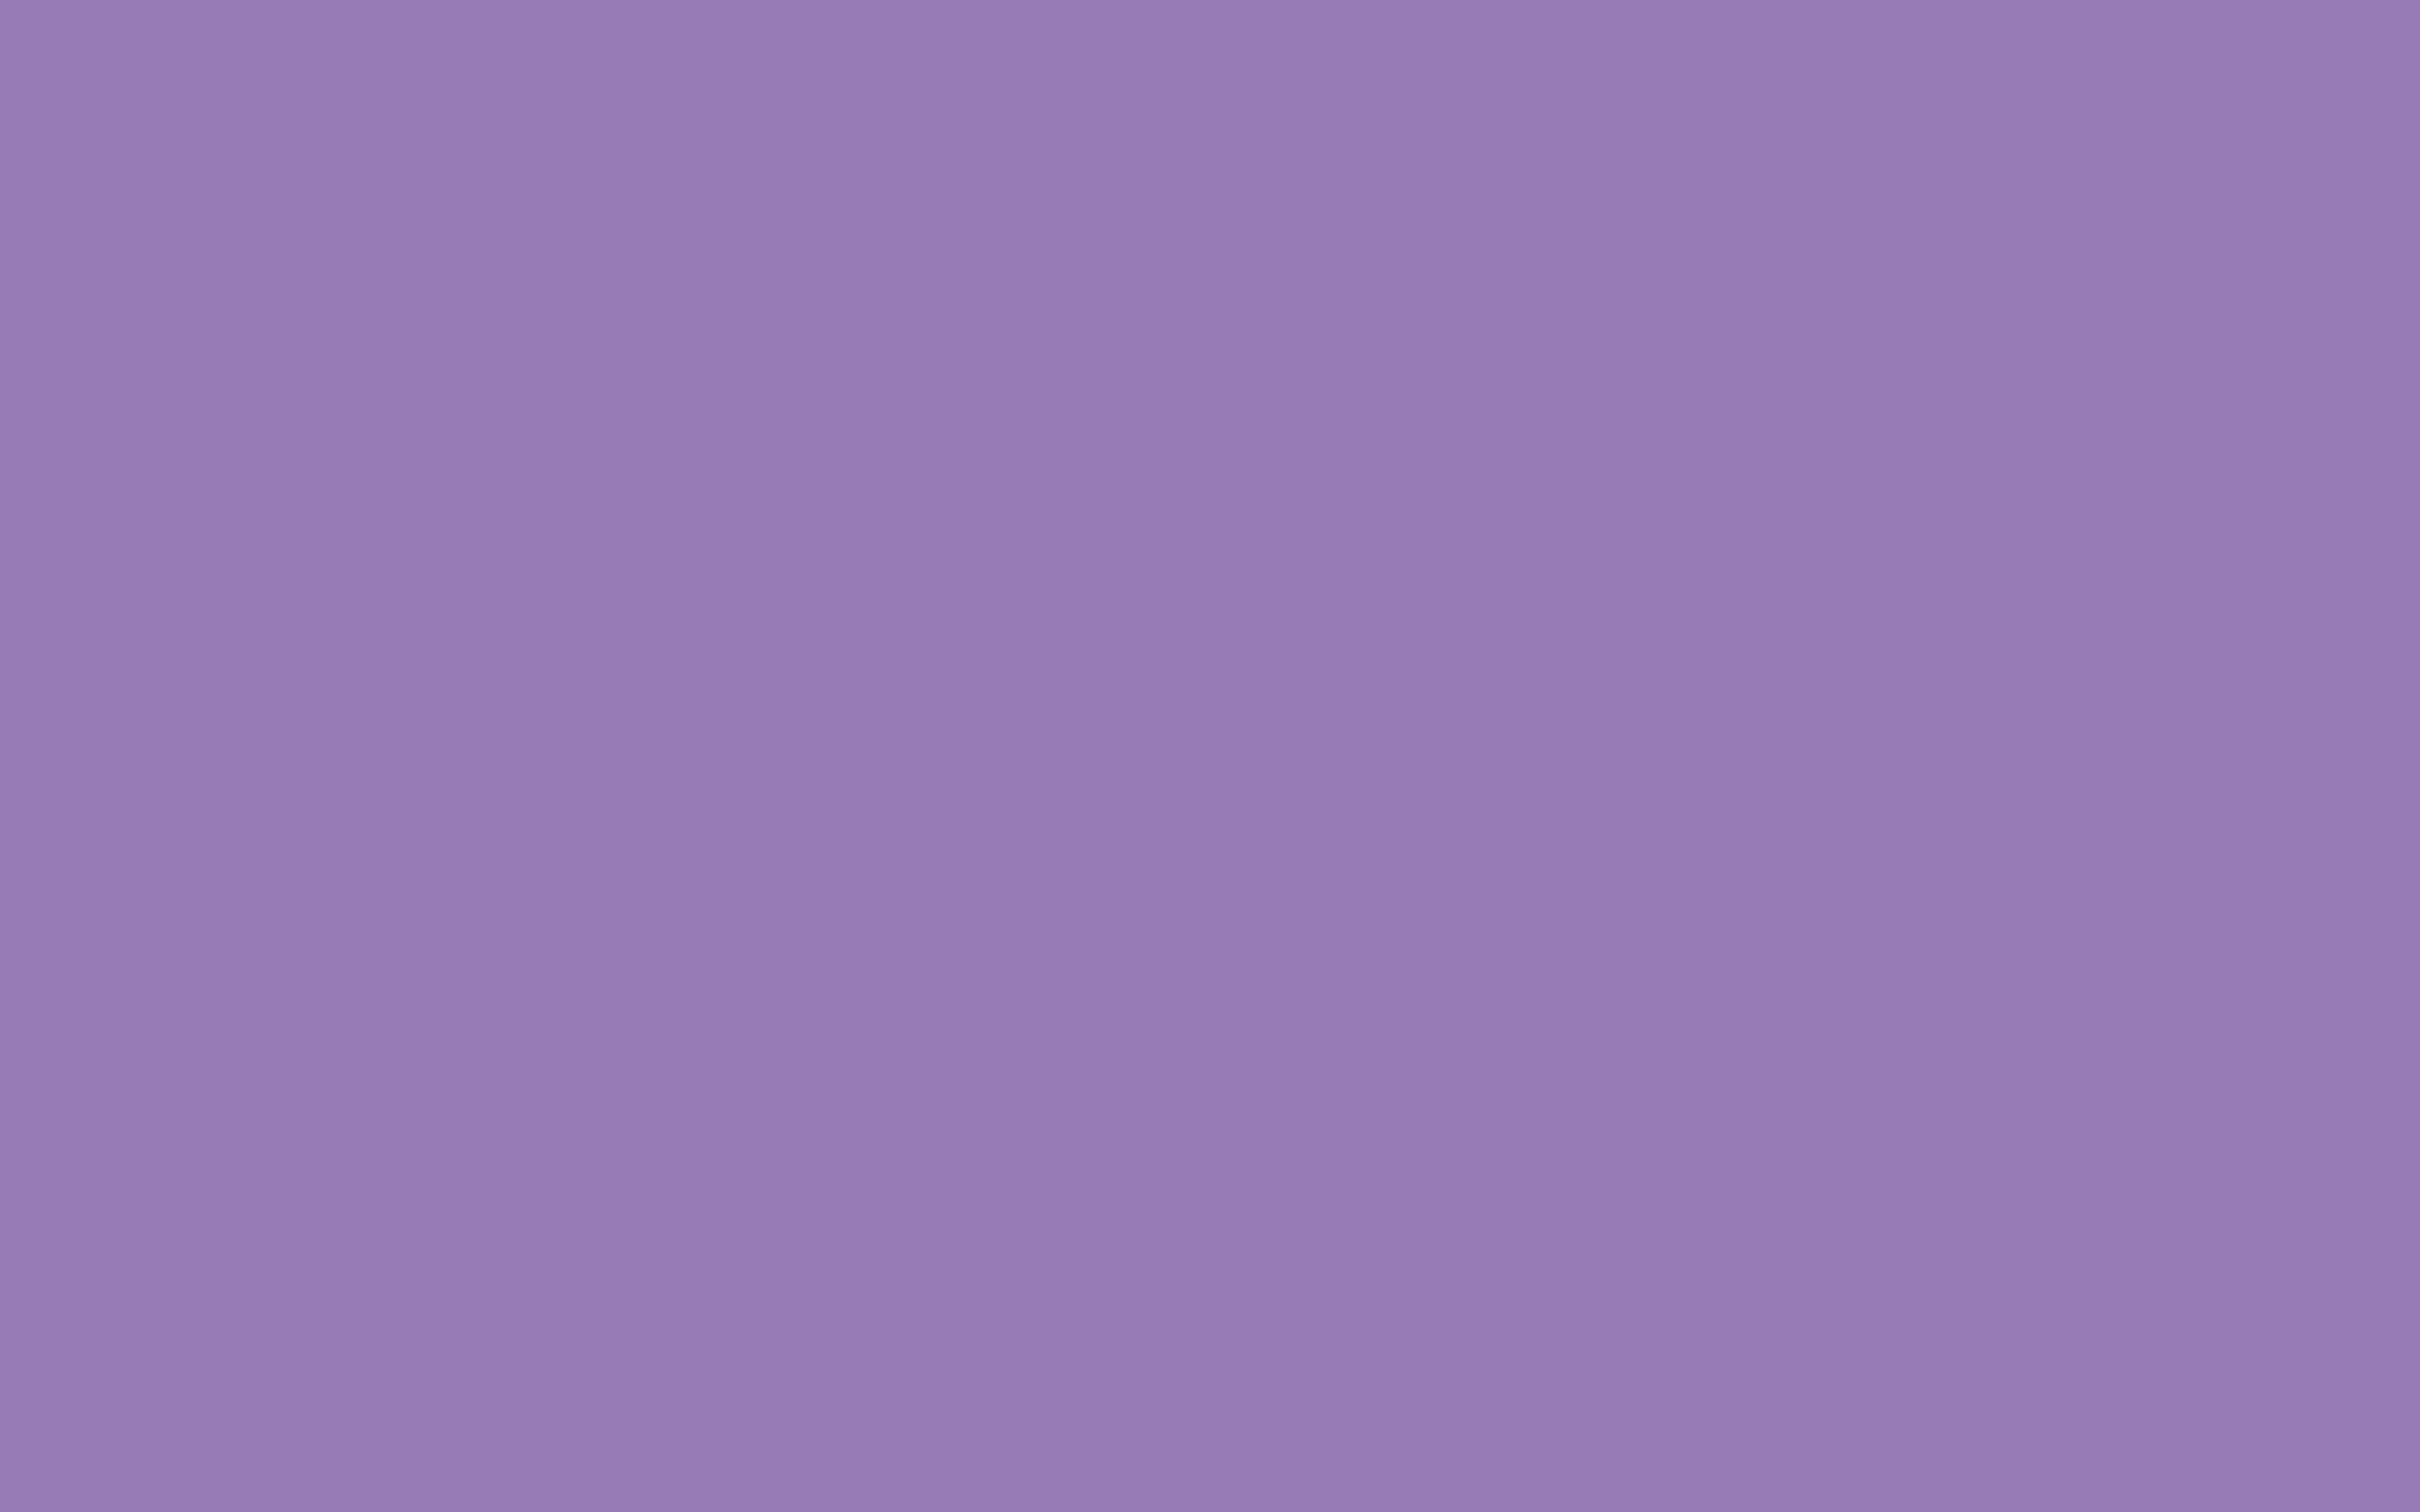 2880x1800 Lavender Purple Solid Color Background